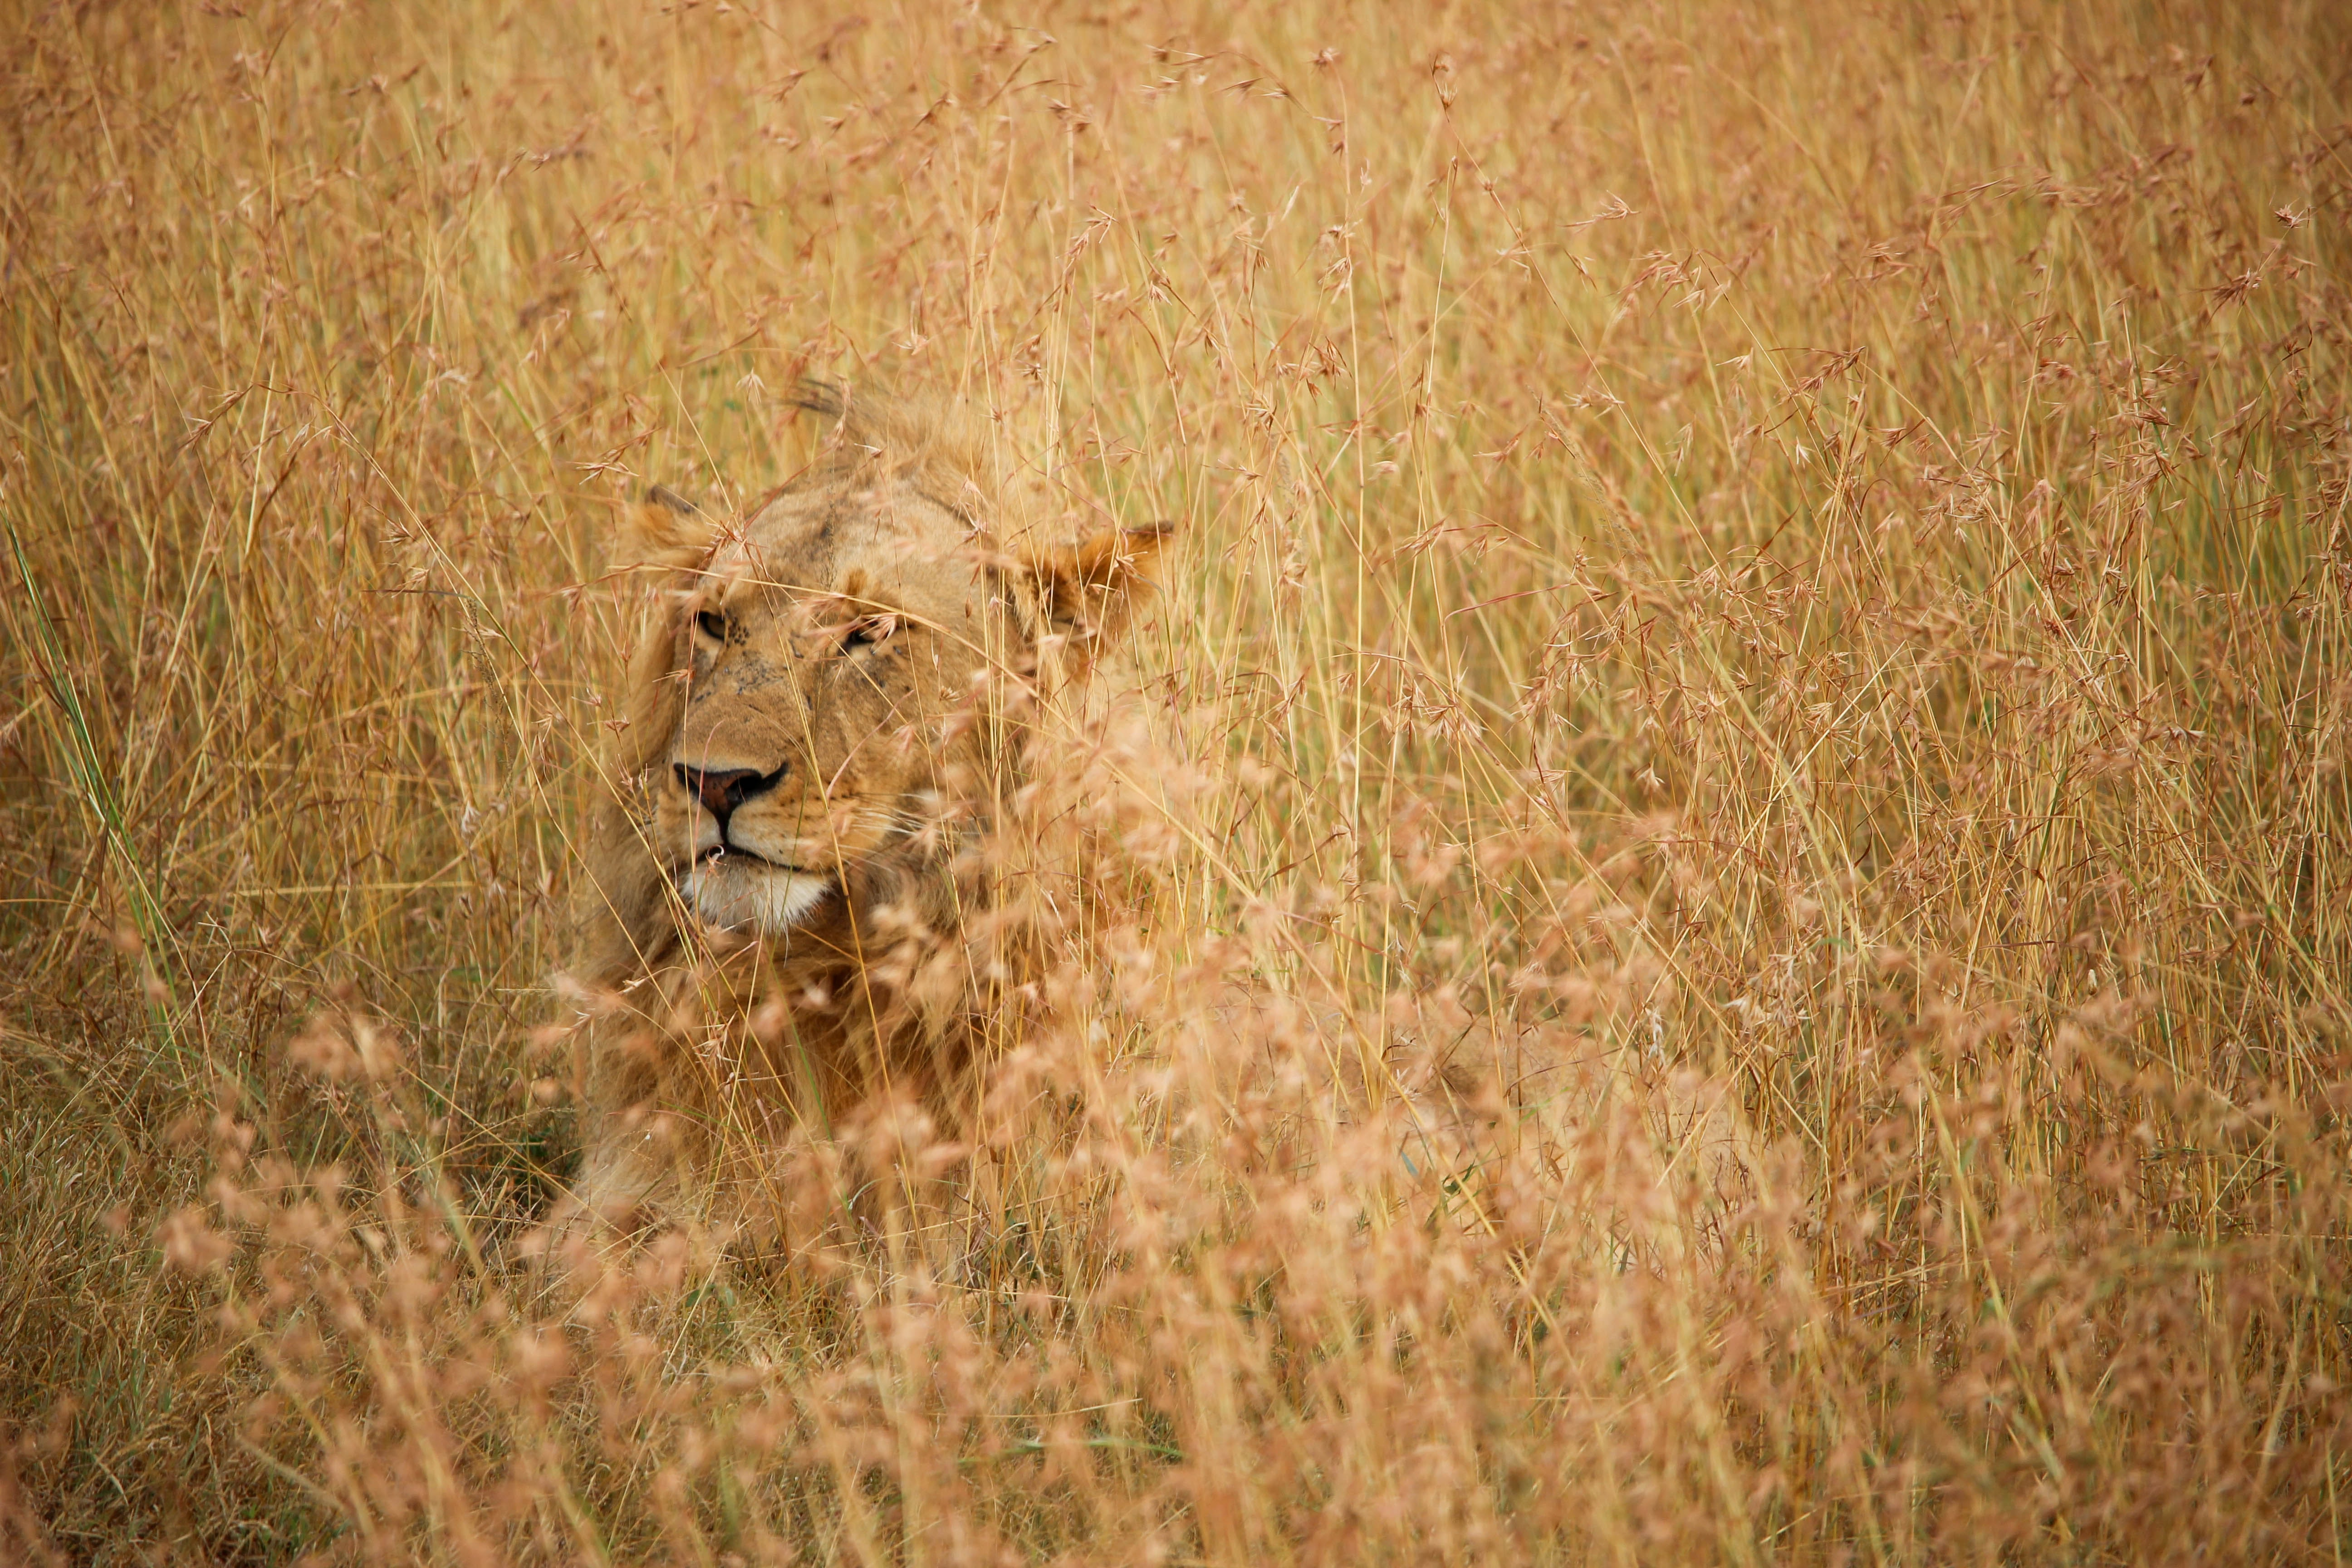 Male lion with mane hiding in camouflage in savanna grass, Masai Mara Game Reserve